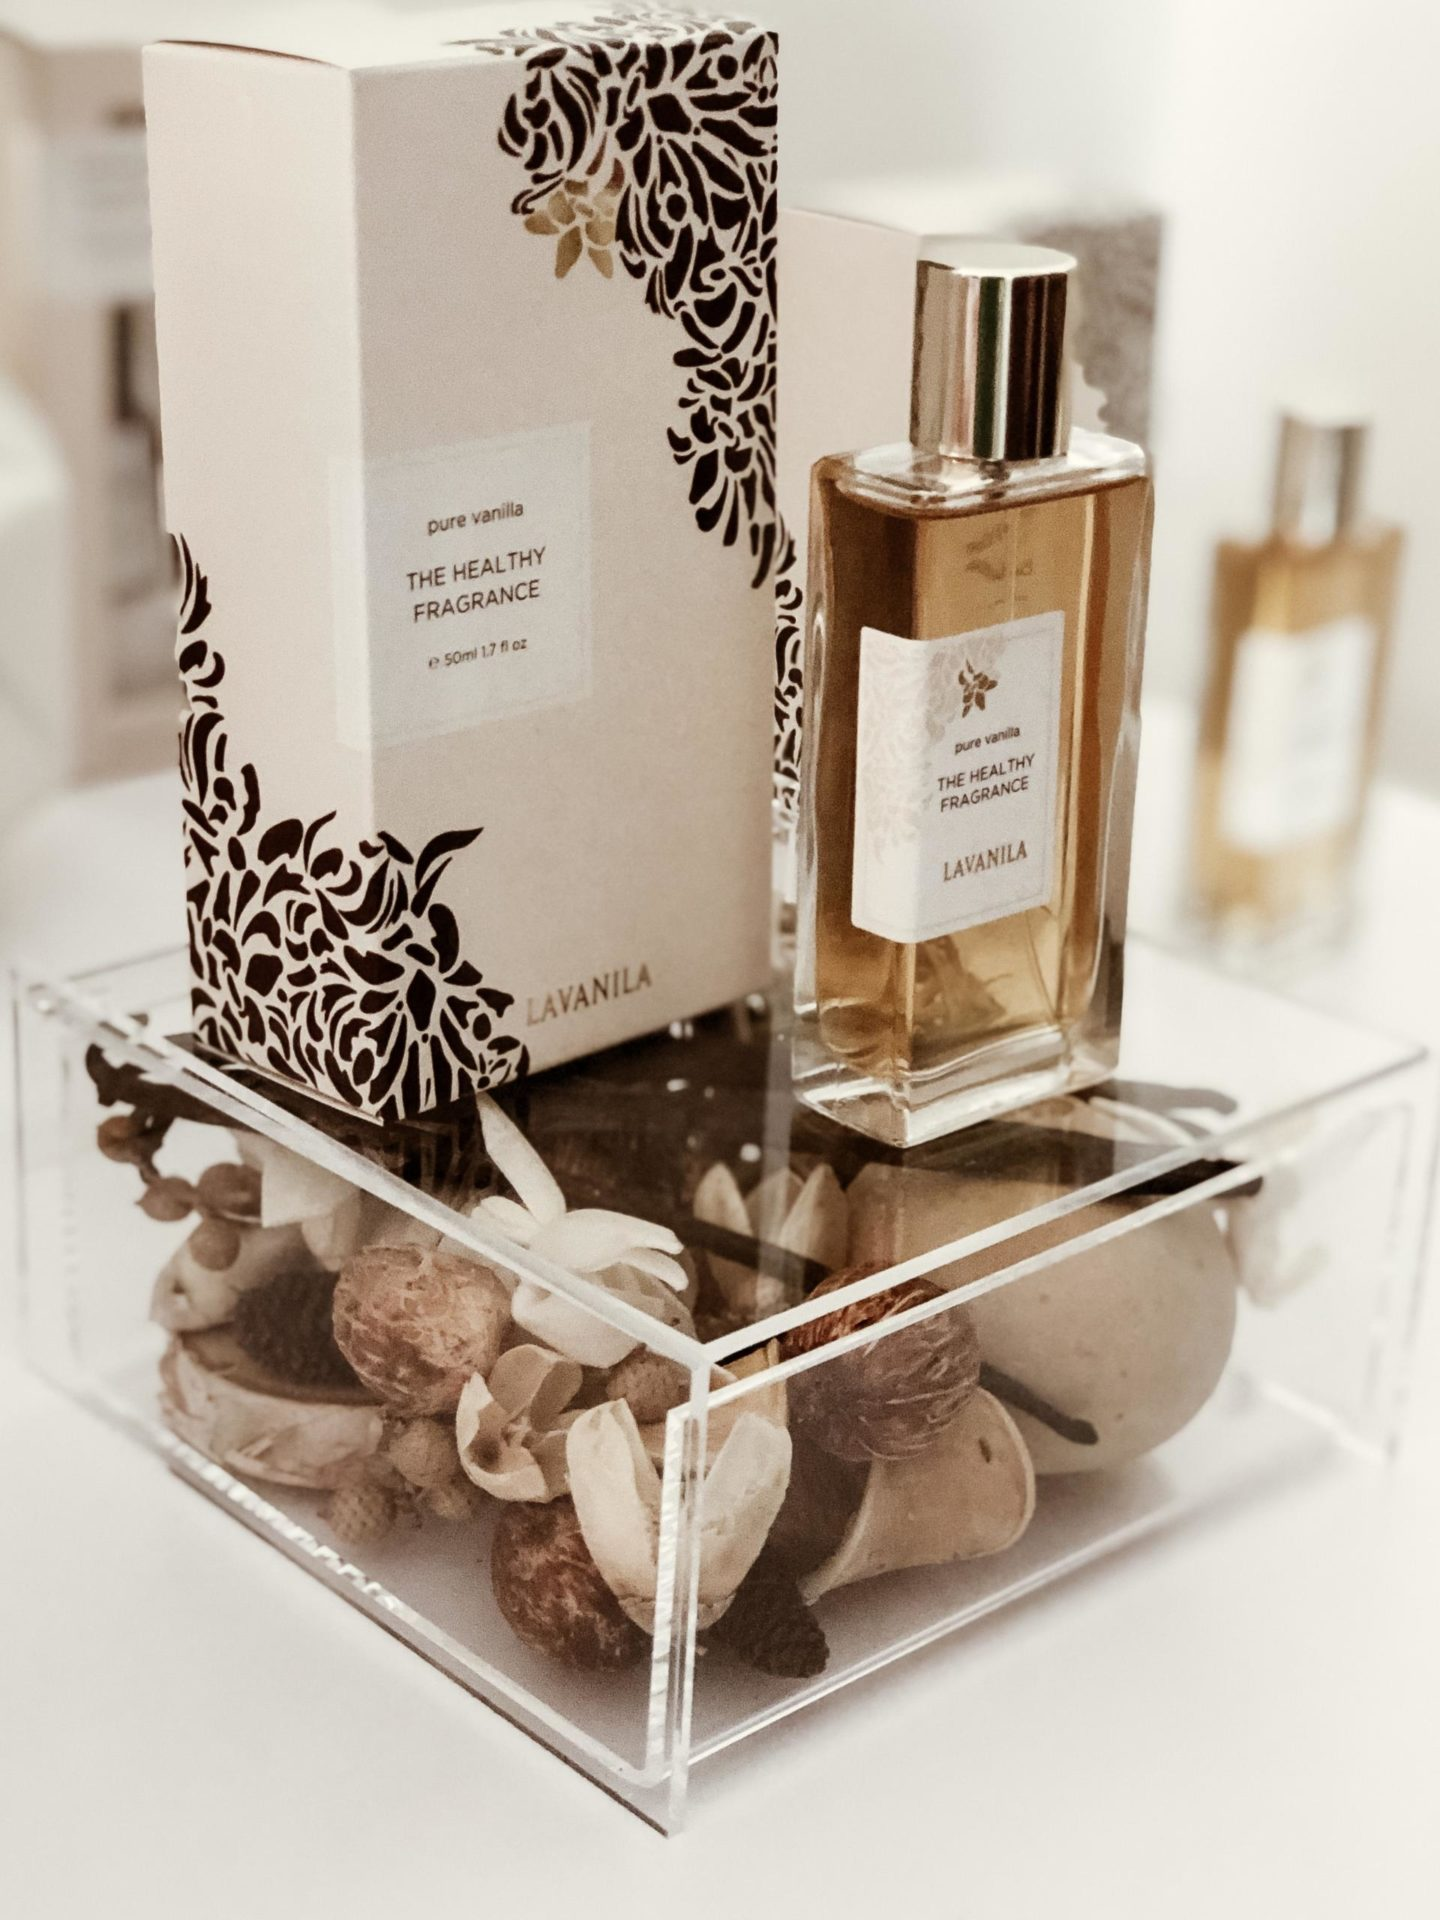 Lavanila Pure Vanilla Perfume Display